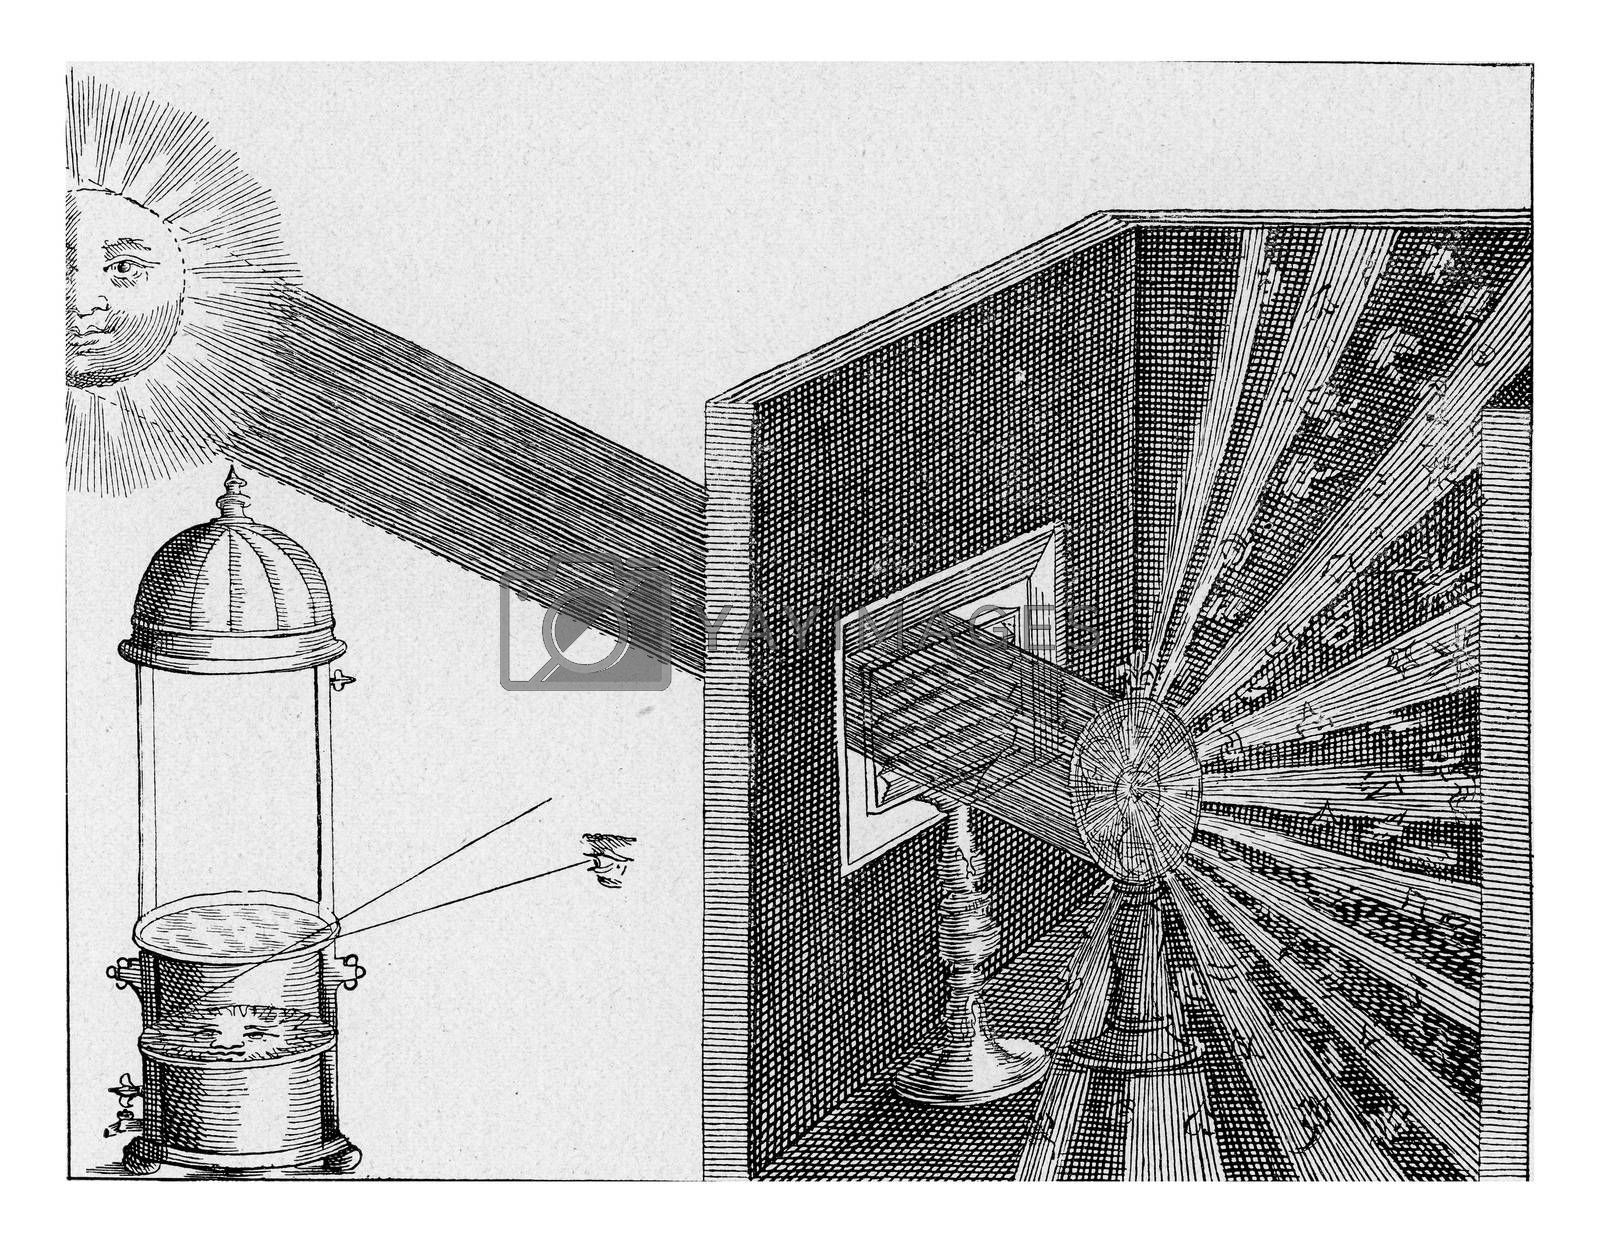 Refraction and diffusion of sunlight, vintage engraved illustration. From the Universe and Humanity, 1910.